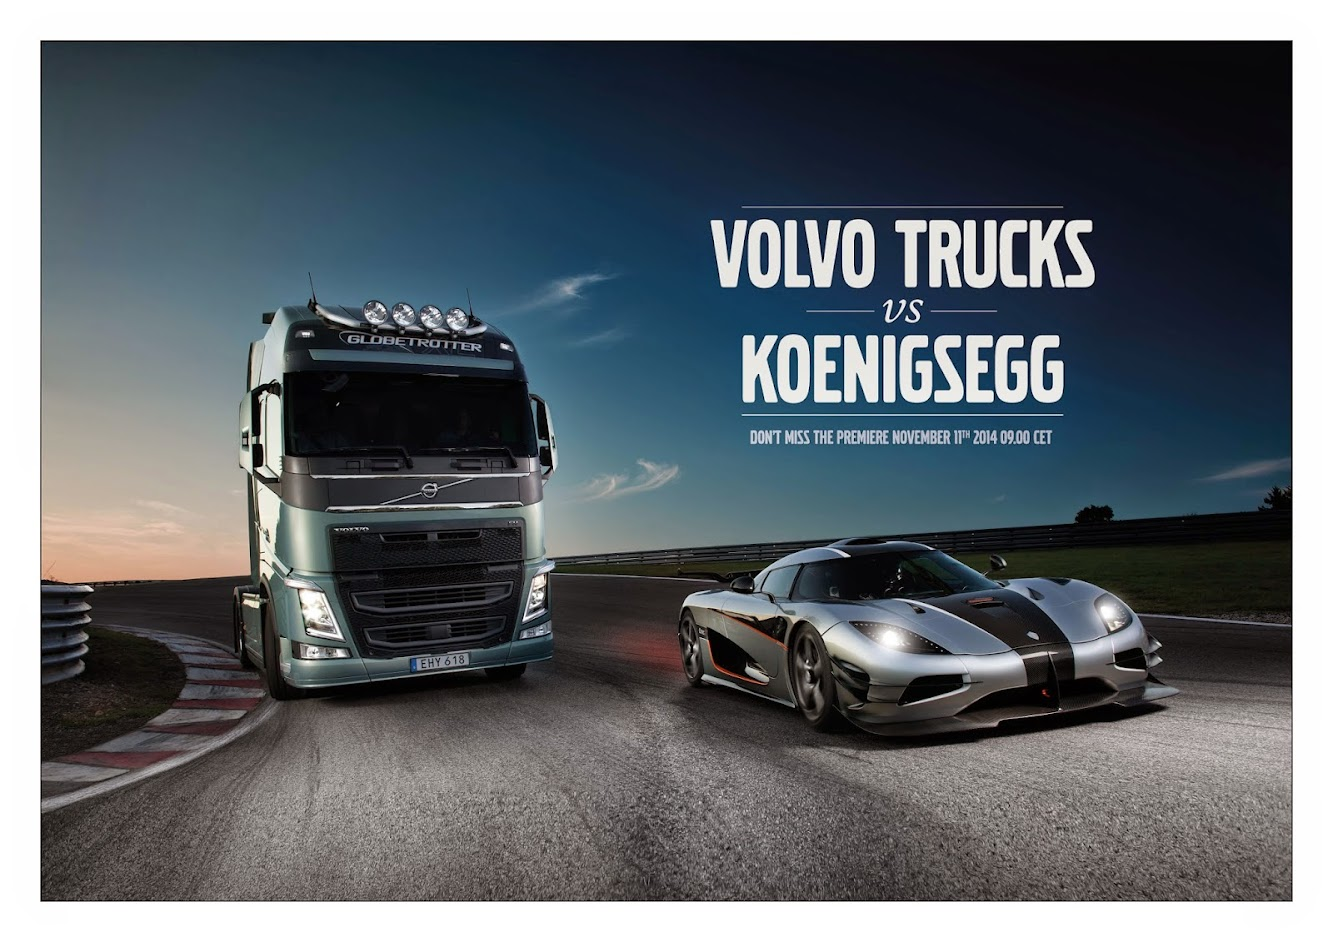 Teaser: Volvo Trucks challenges one of the world's fastest sports cars — a Koenigsegg One:1